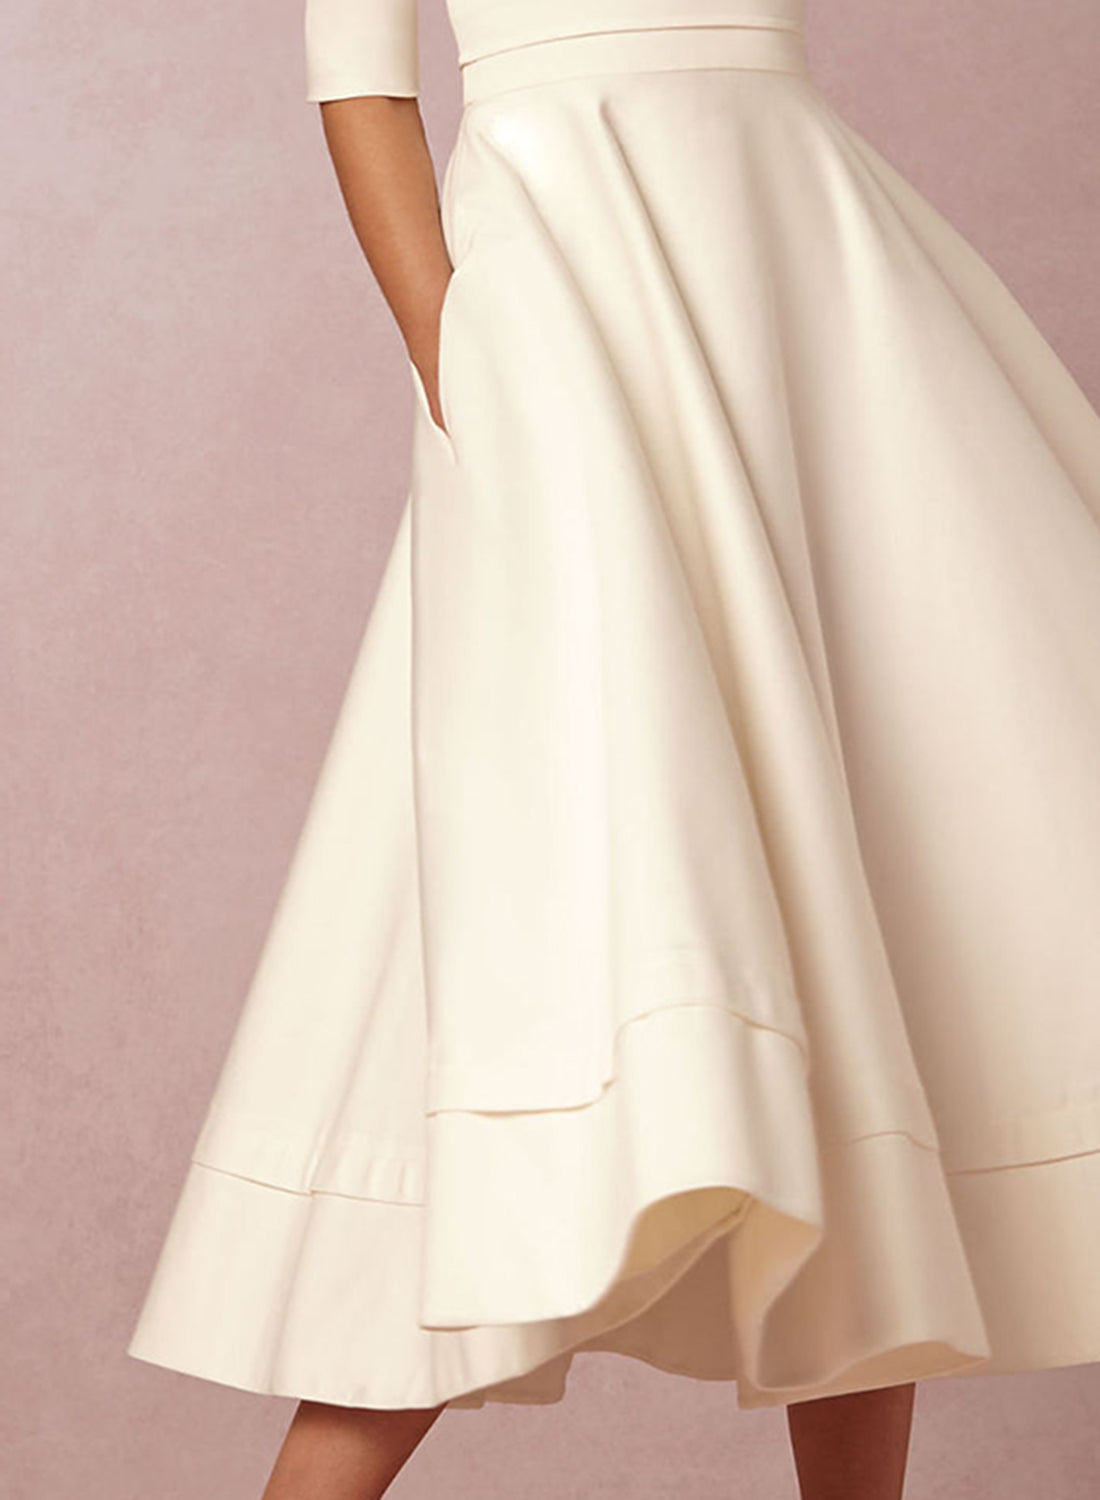 a73a2e3b81 ... Load image into Gallery viewer, A-Line V Neck Half Sleeve Midi Party  Dress ...